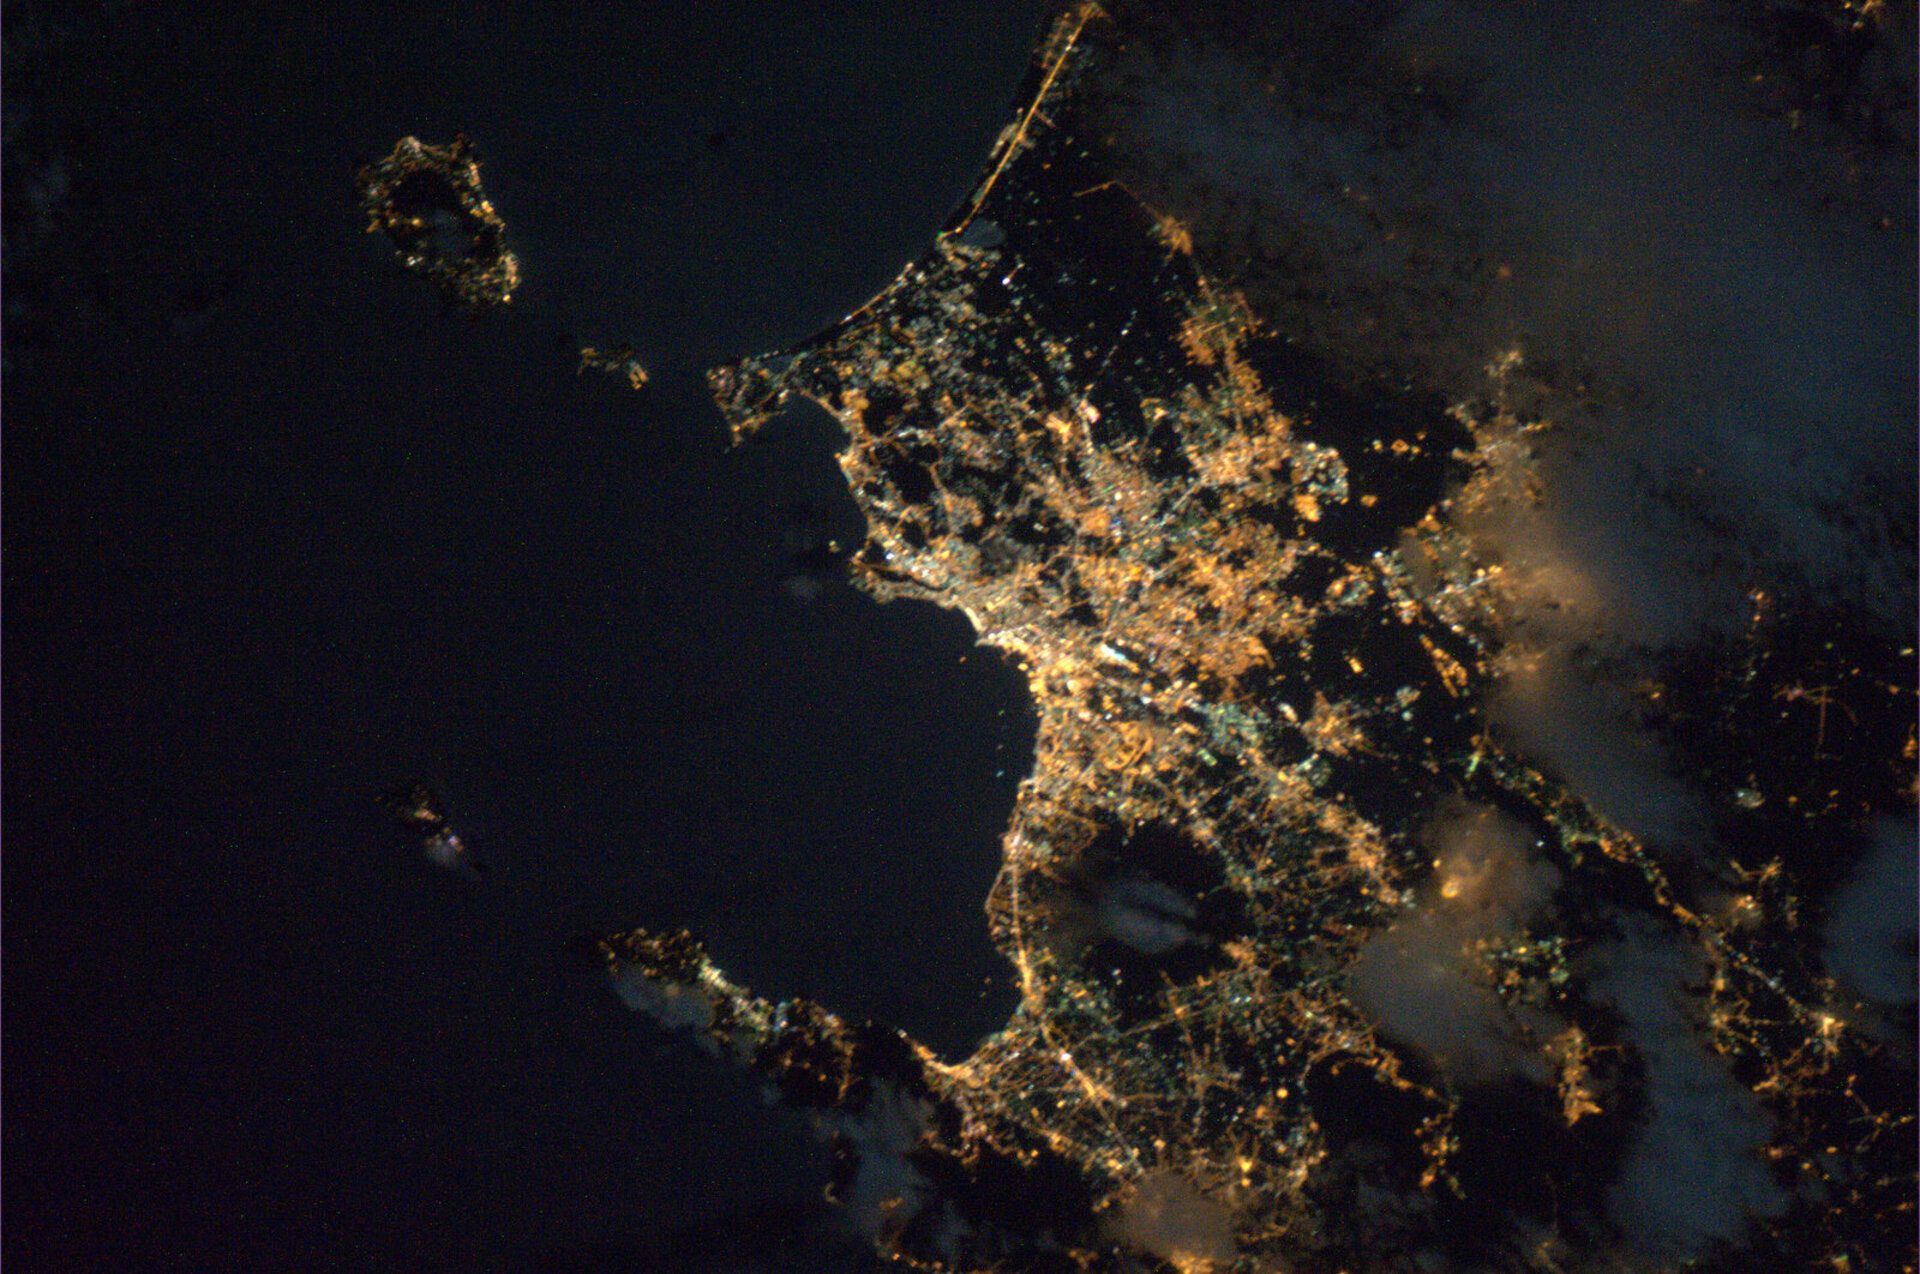 Naples and the Mount Vesuvius seen from ISS